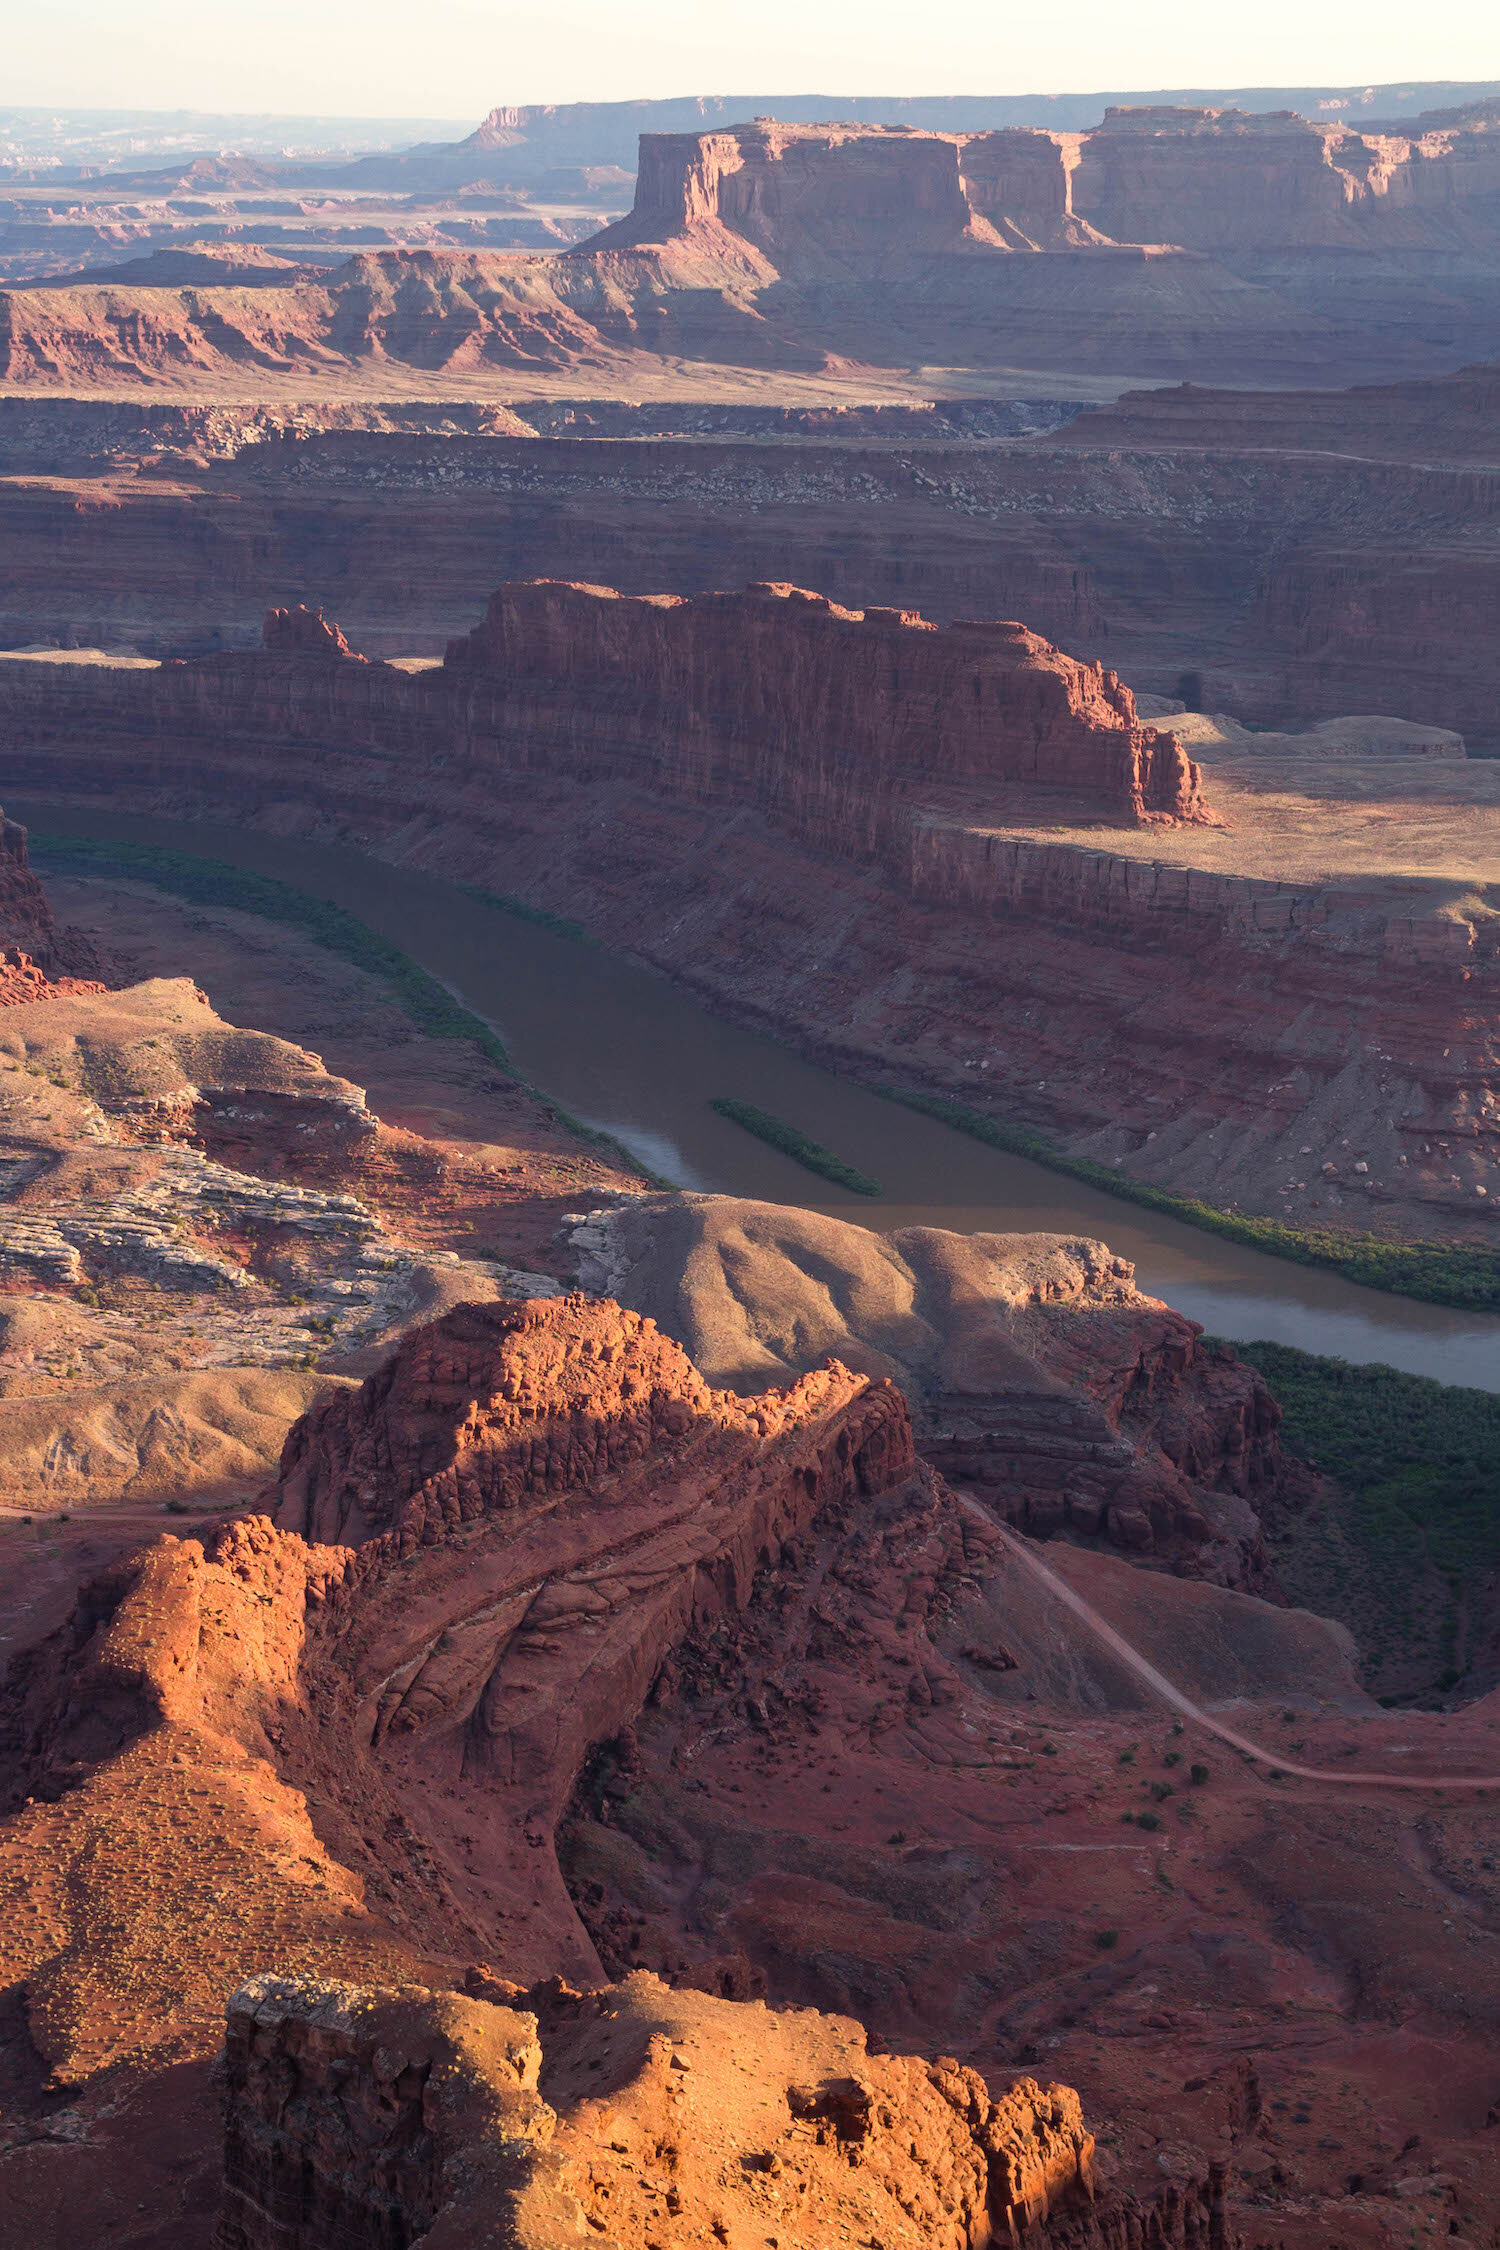 Looking at the Colorado River from Dead Horse Point State Park at sunset.